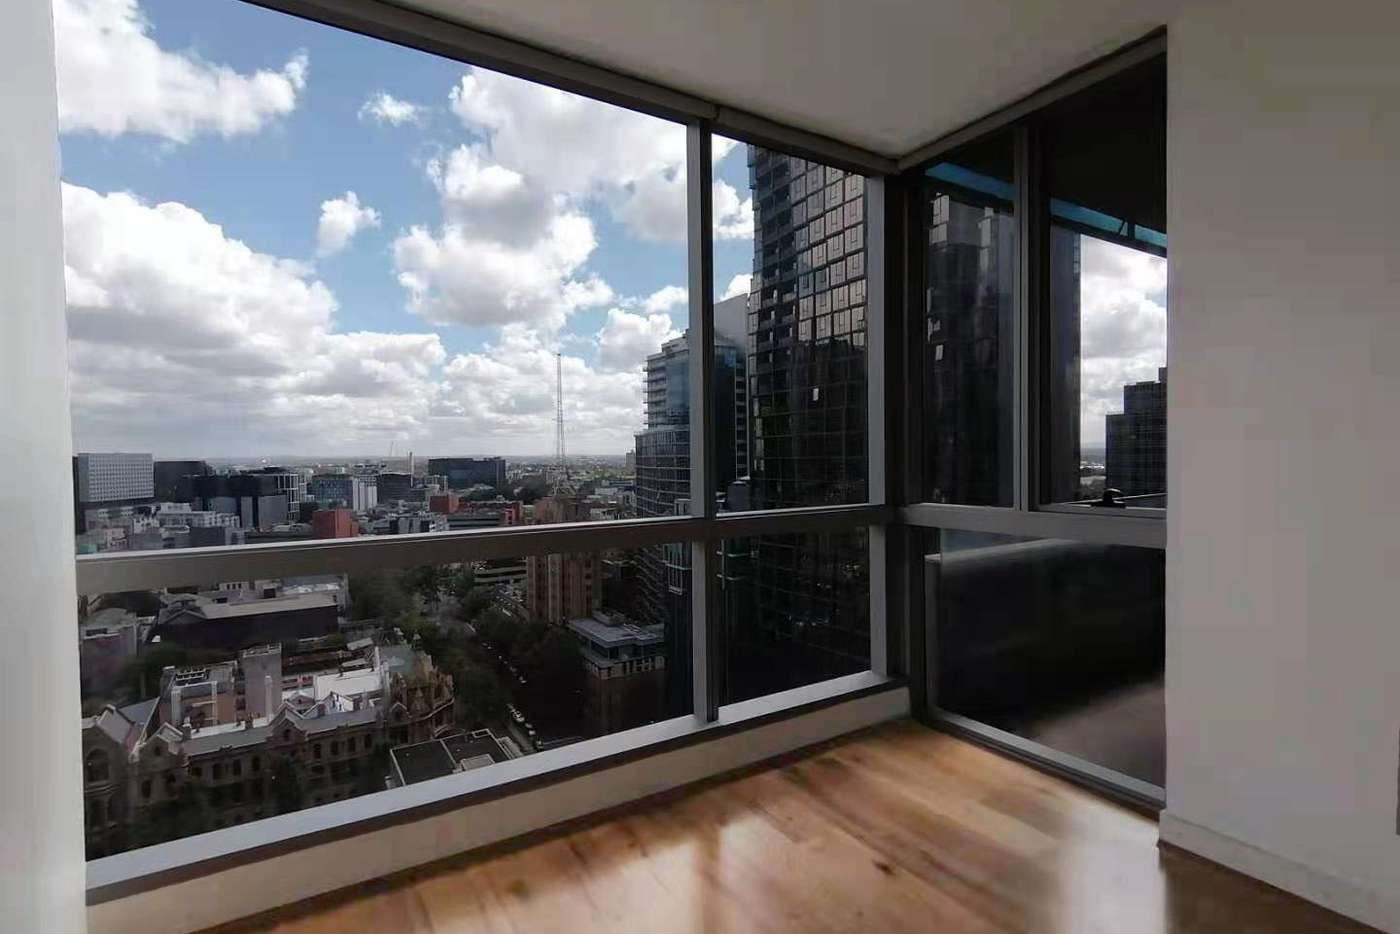 Main view of Homely apartment listing, 2406/22-24 Jane Bell Lane, Melbourne VIC 3000